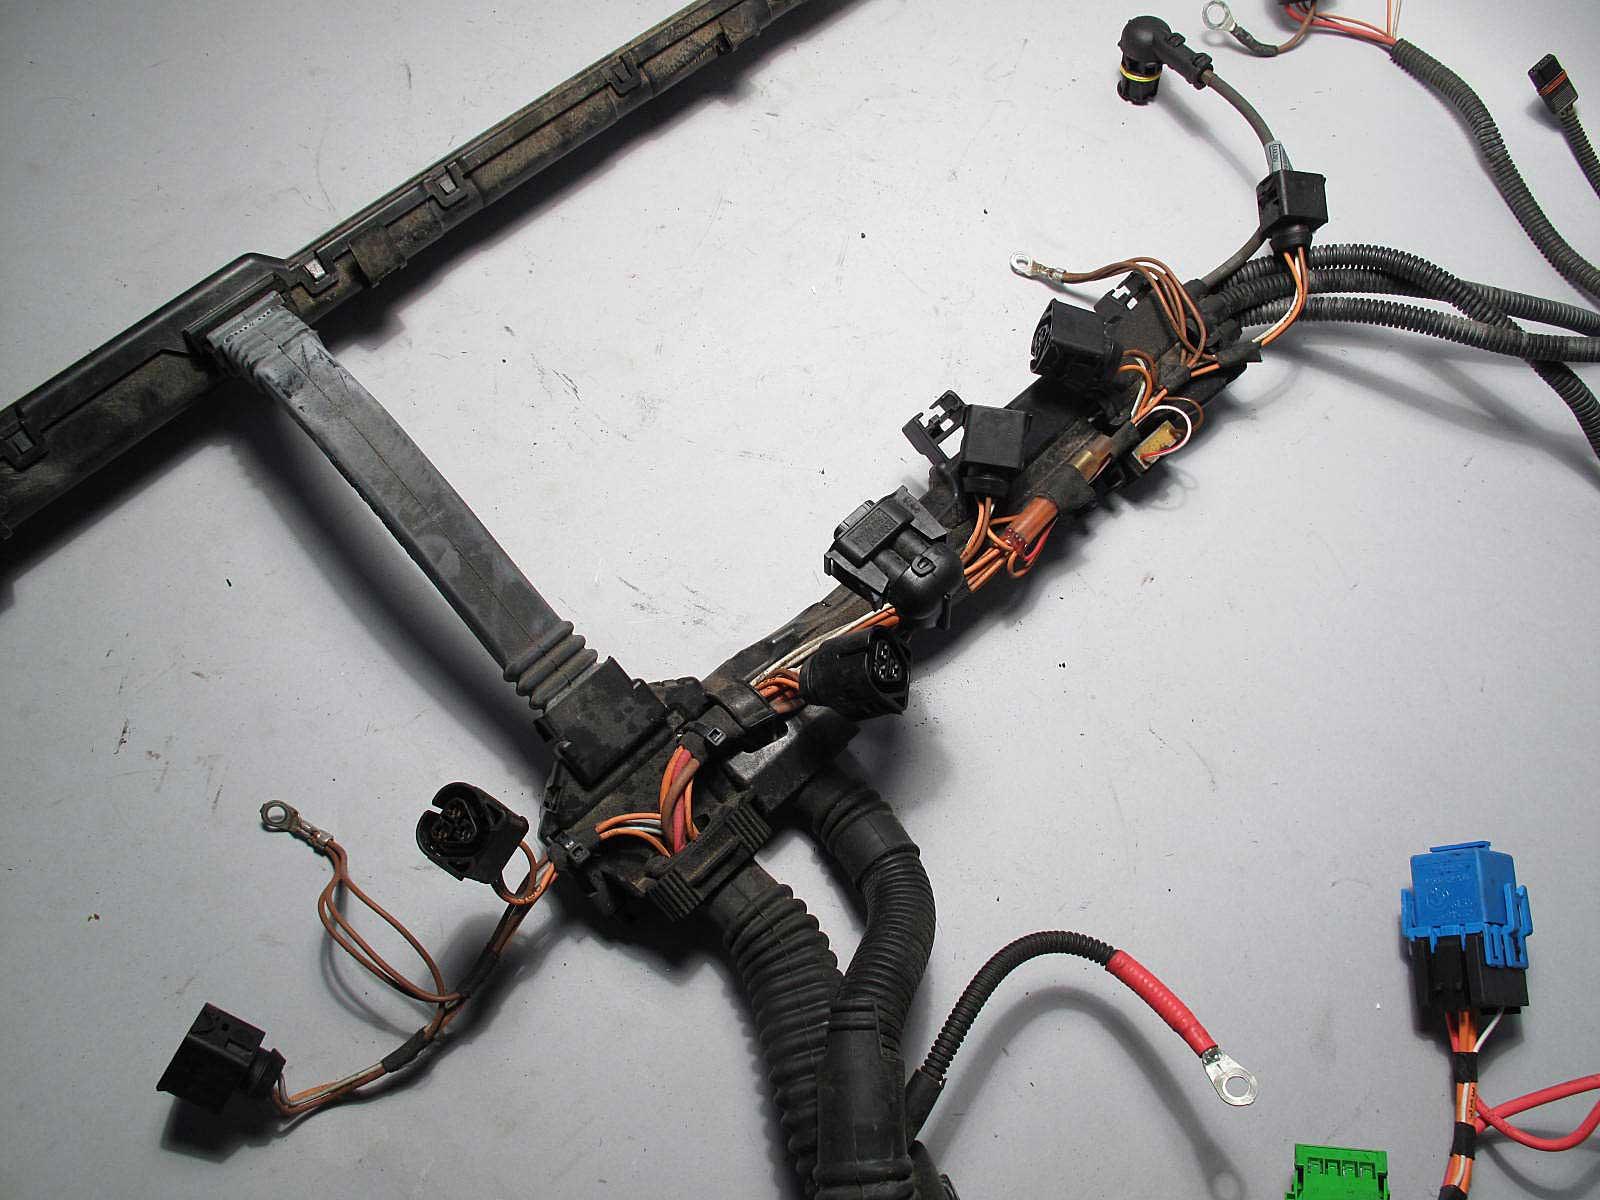 inv_006119_02 bmw n51 n52 n52n 6 cyl engine ignition coil wiring harness 2007  at readyjetset.co